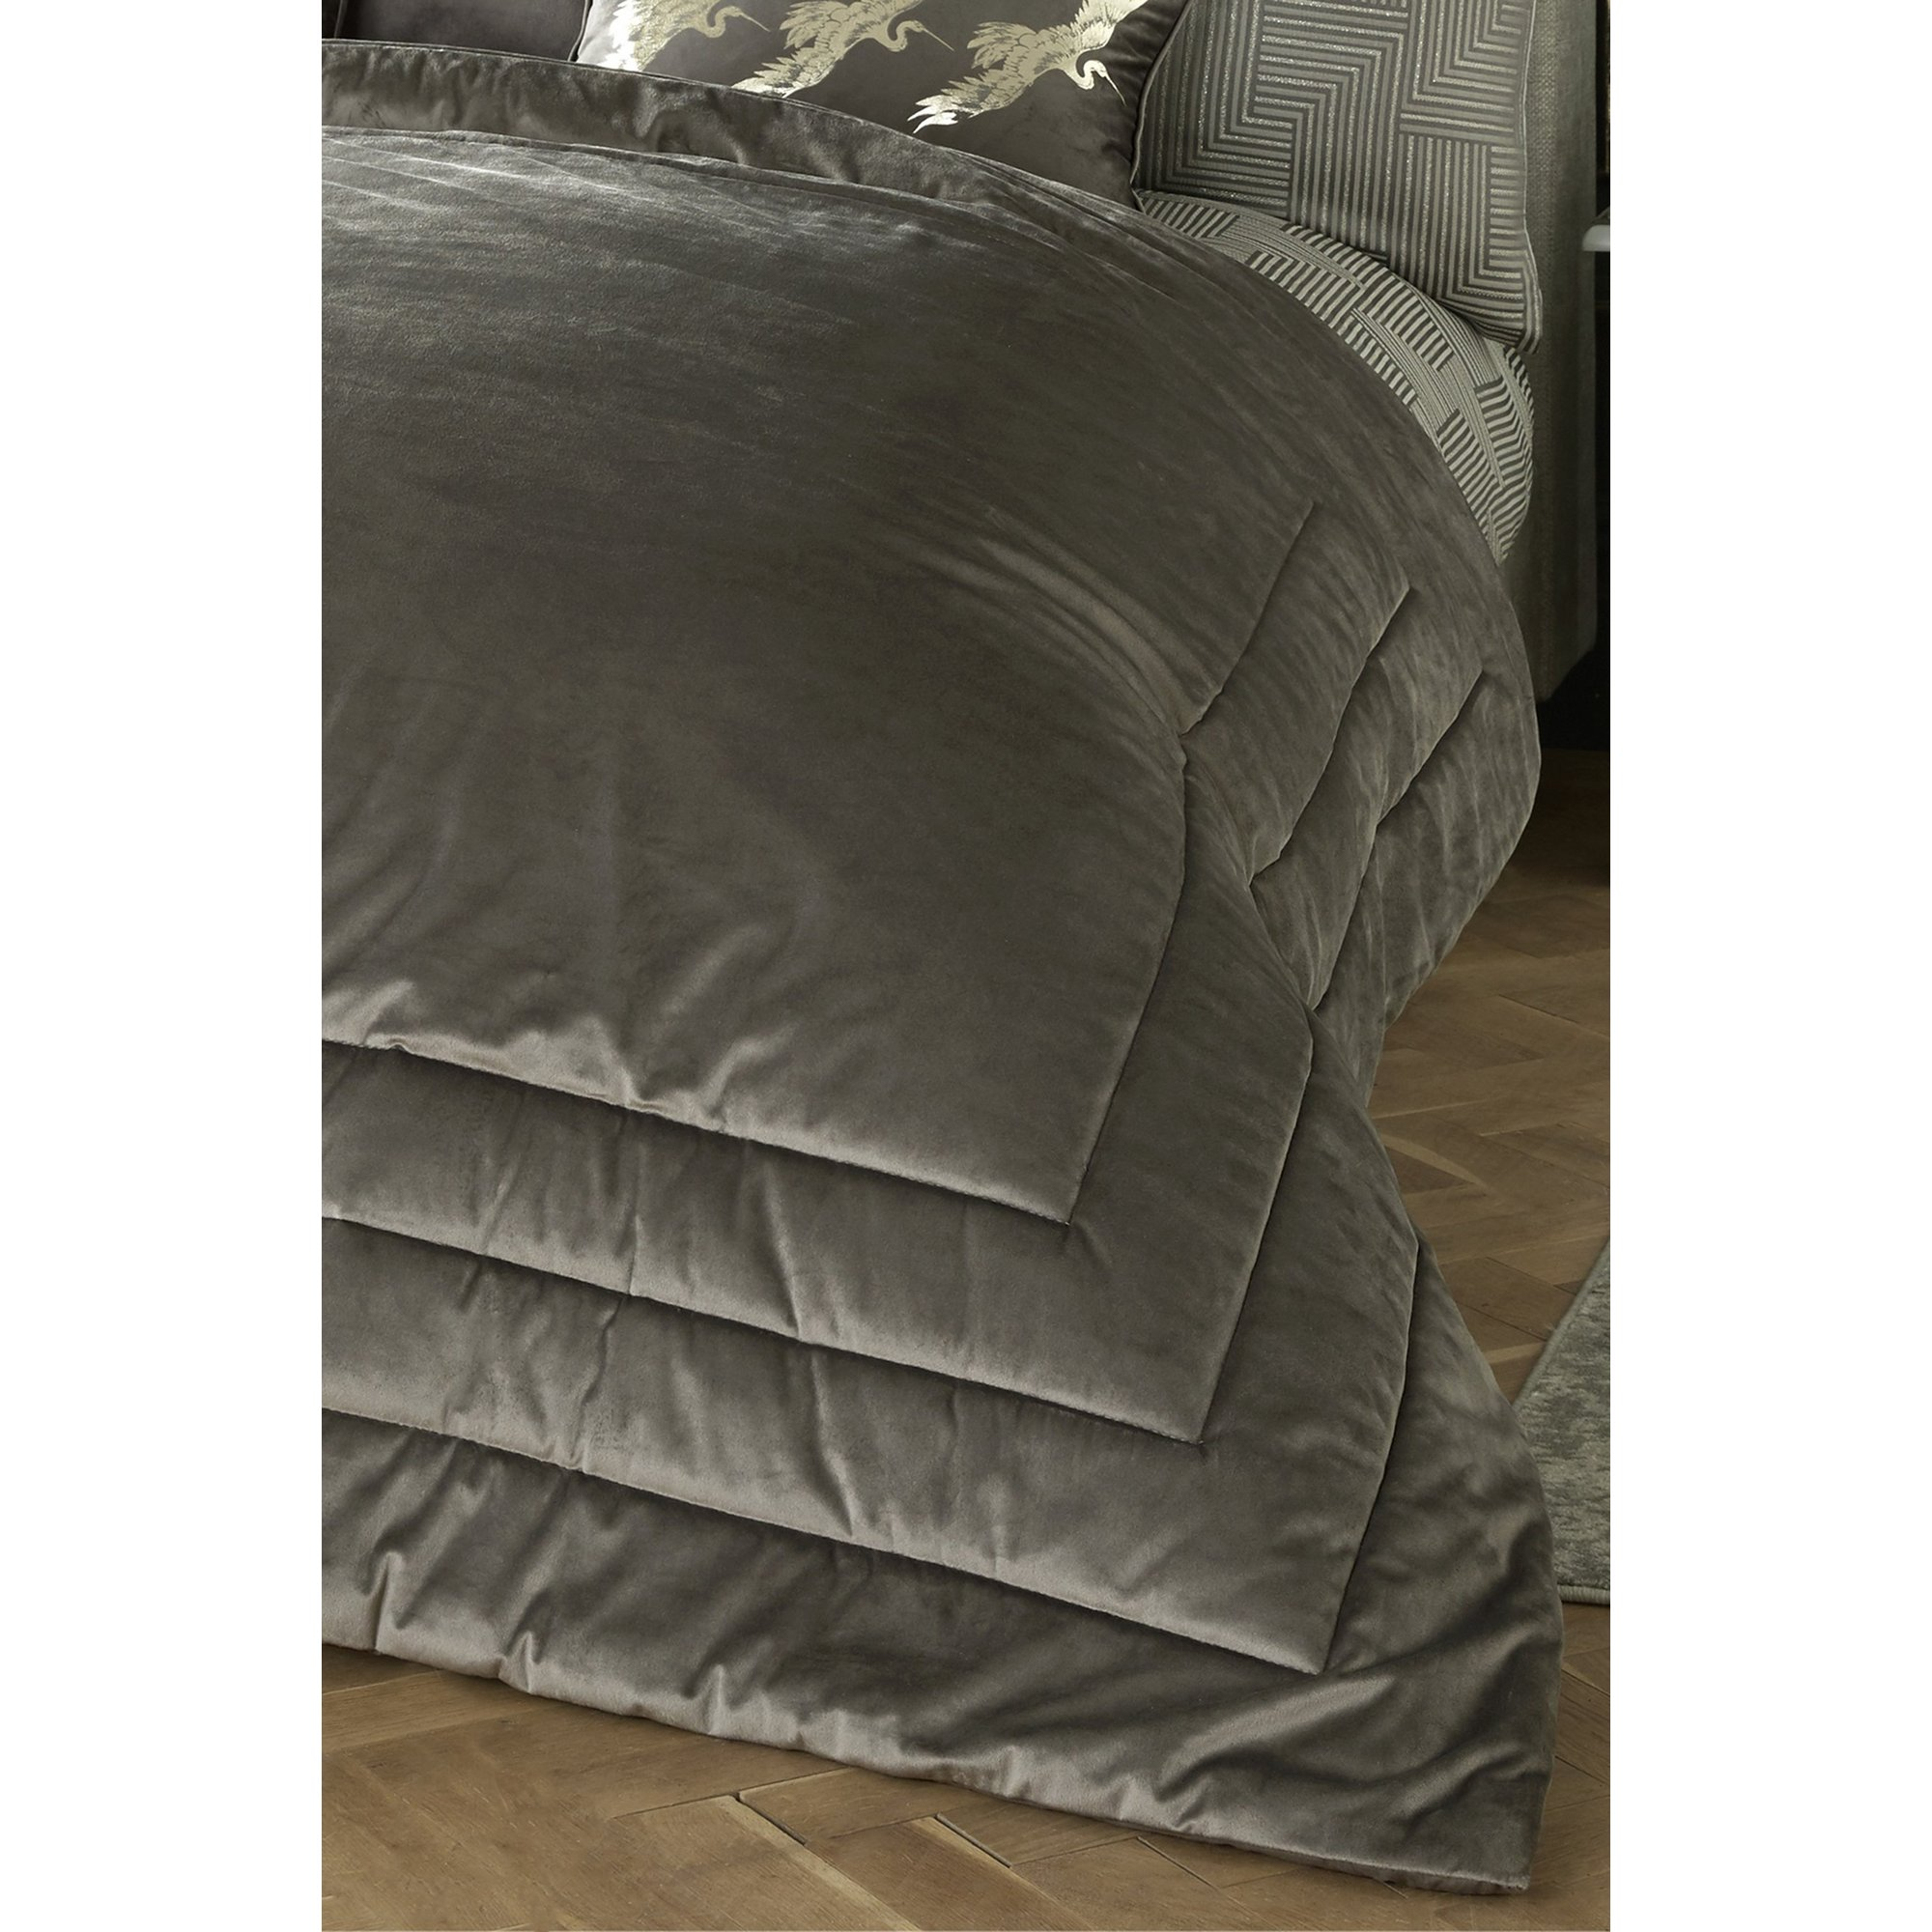 Image of Caprice Chic Bedspread